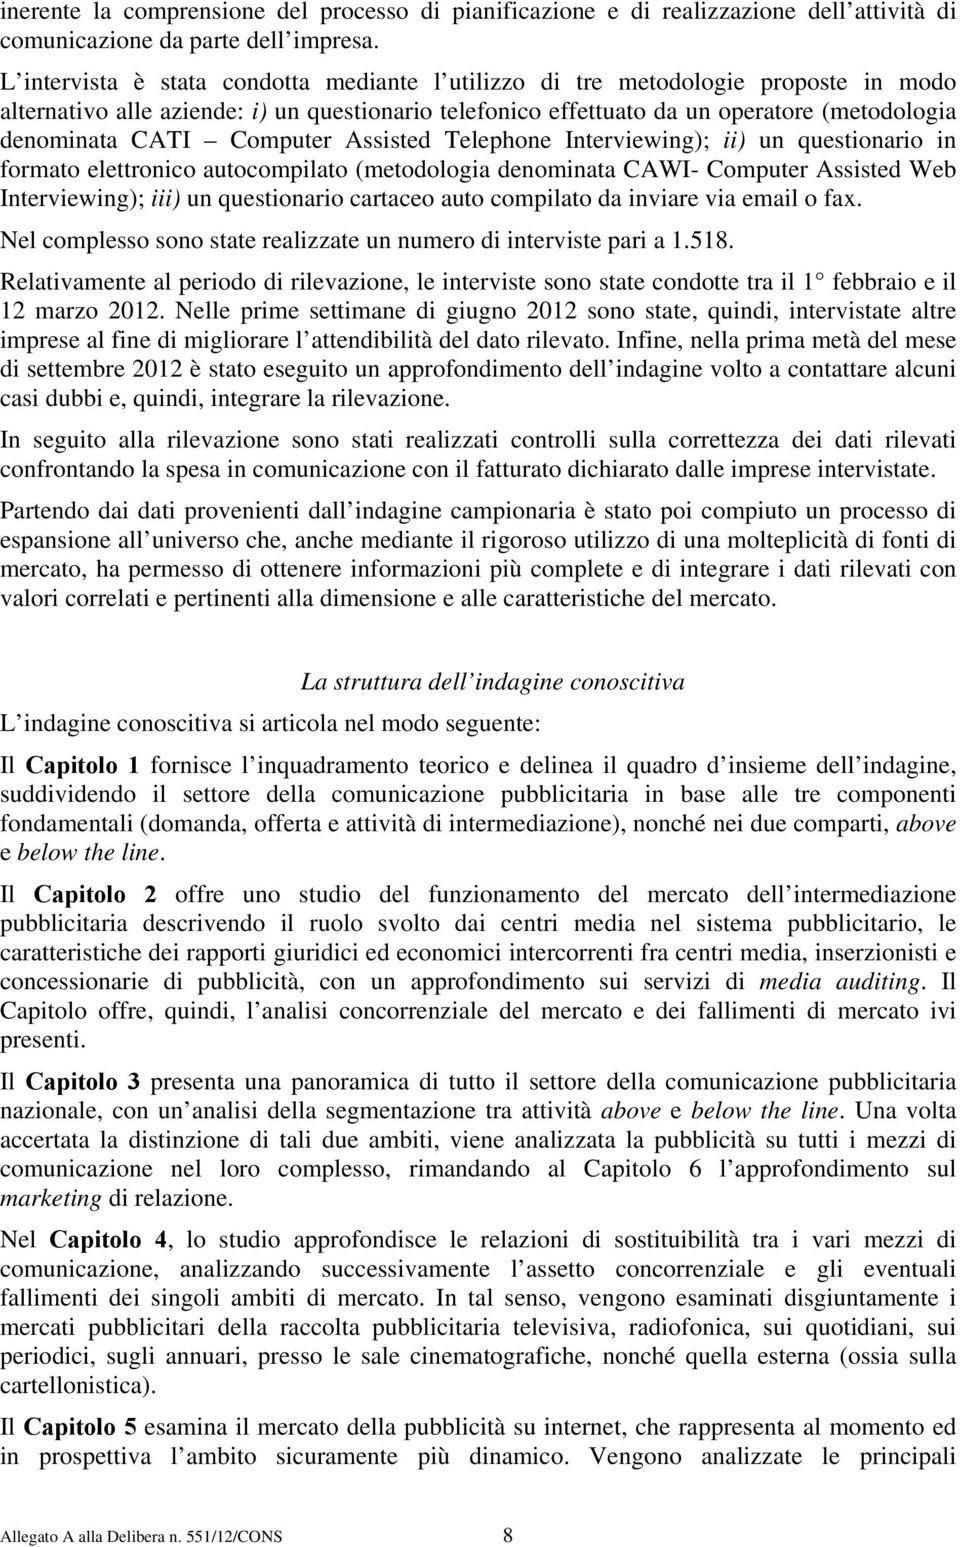 Computer Assisted Telephone Interviewing); ii) un questionario in formato elettronico autocompilato (metodologia denominata CAWI- Computer Assisted Web Interviewing); iii) un questionario cartaceo